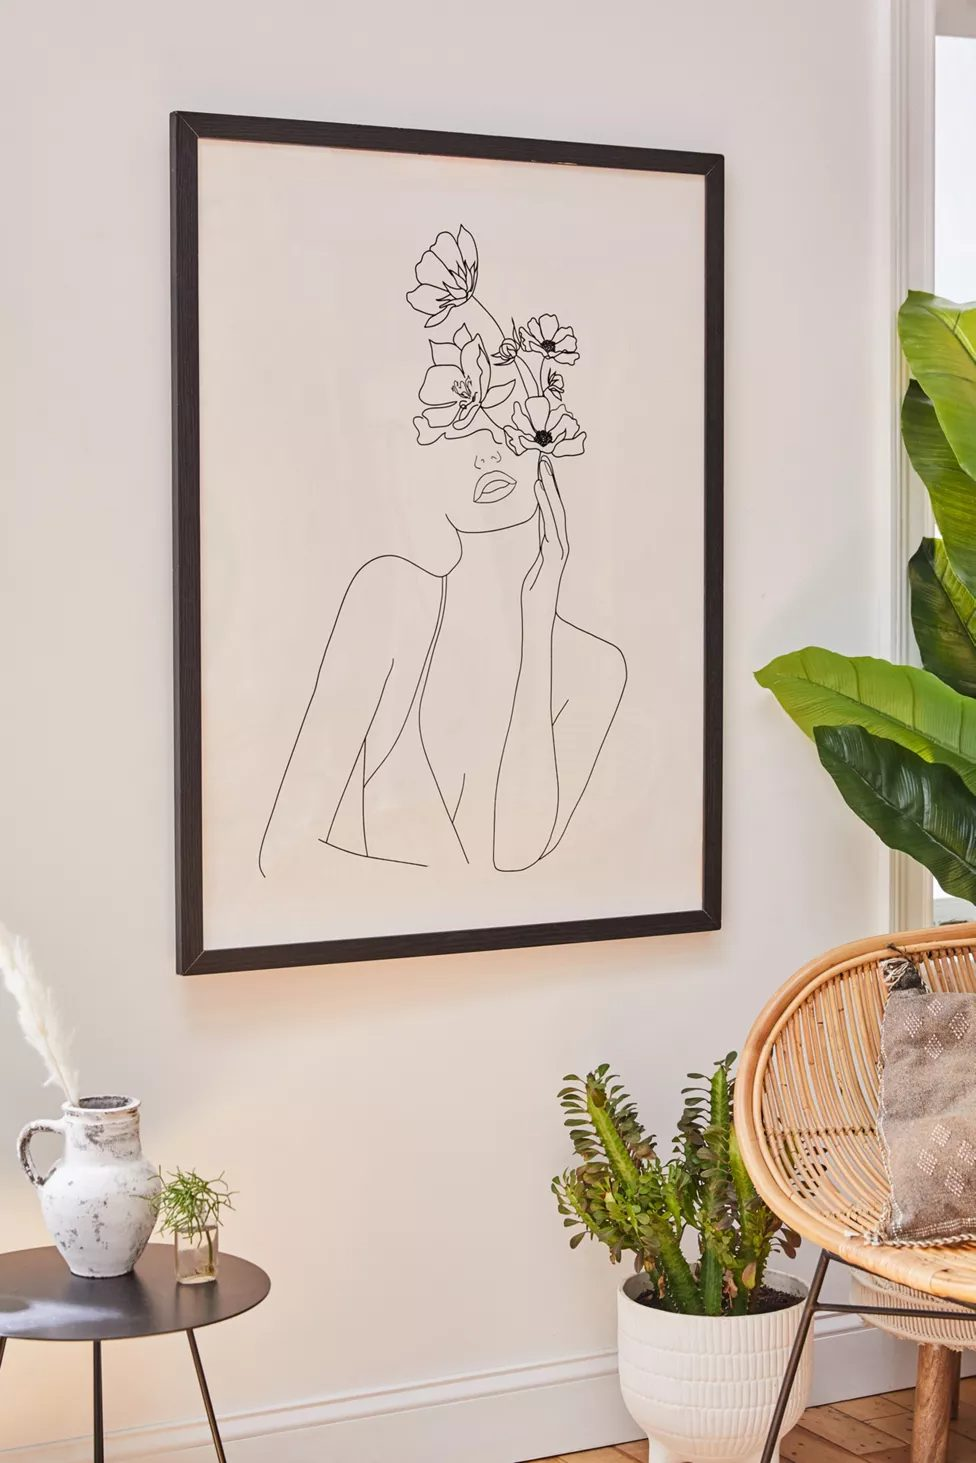 Abstract wall art with female figure and flowers